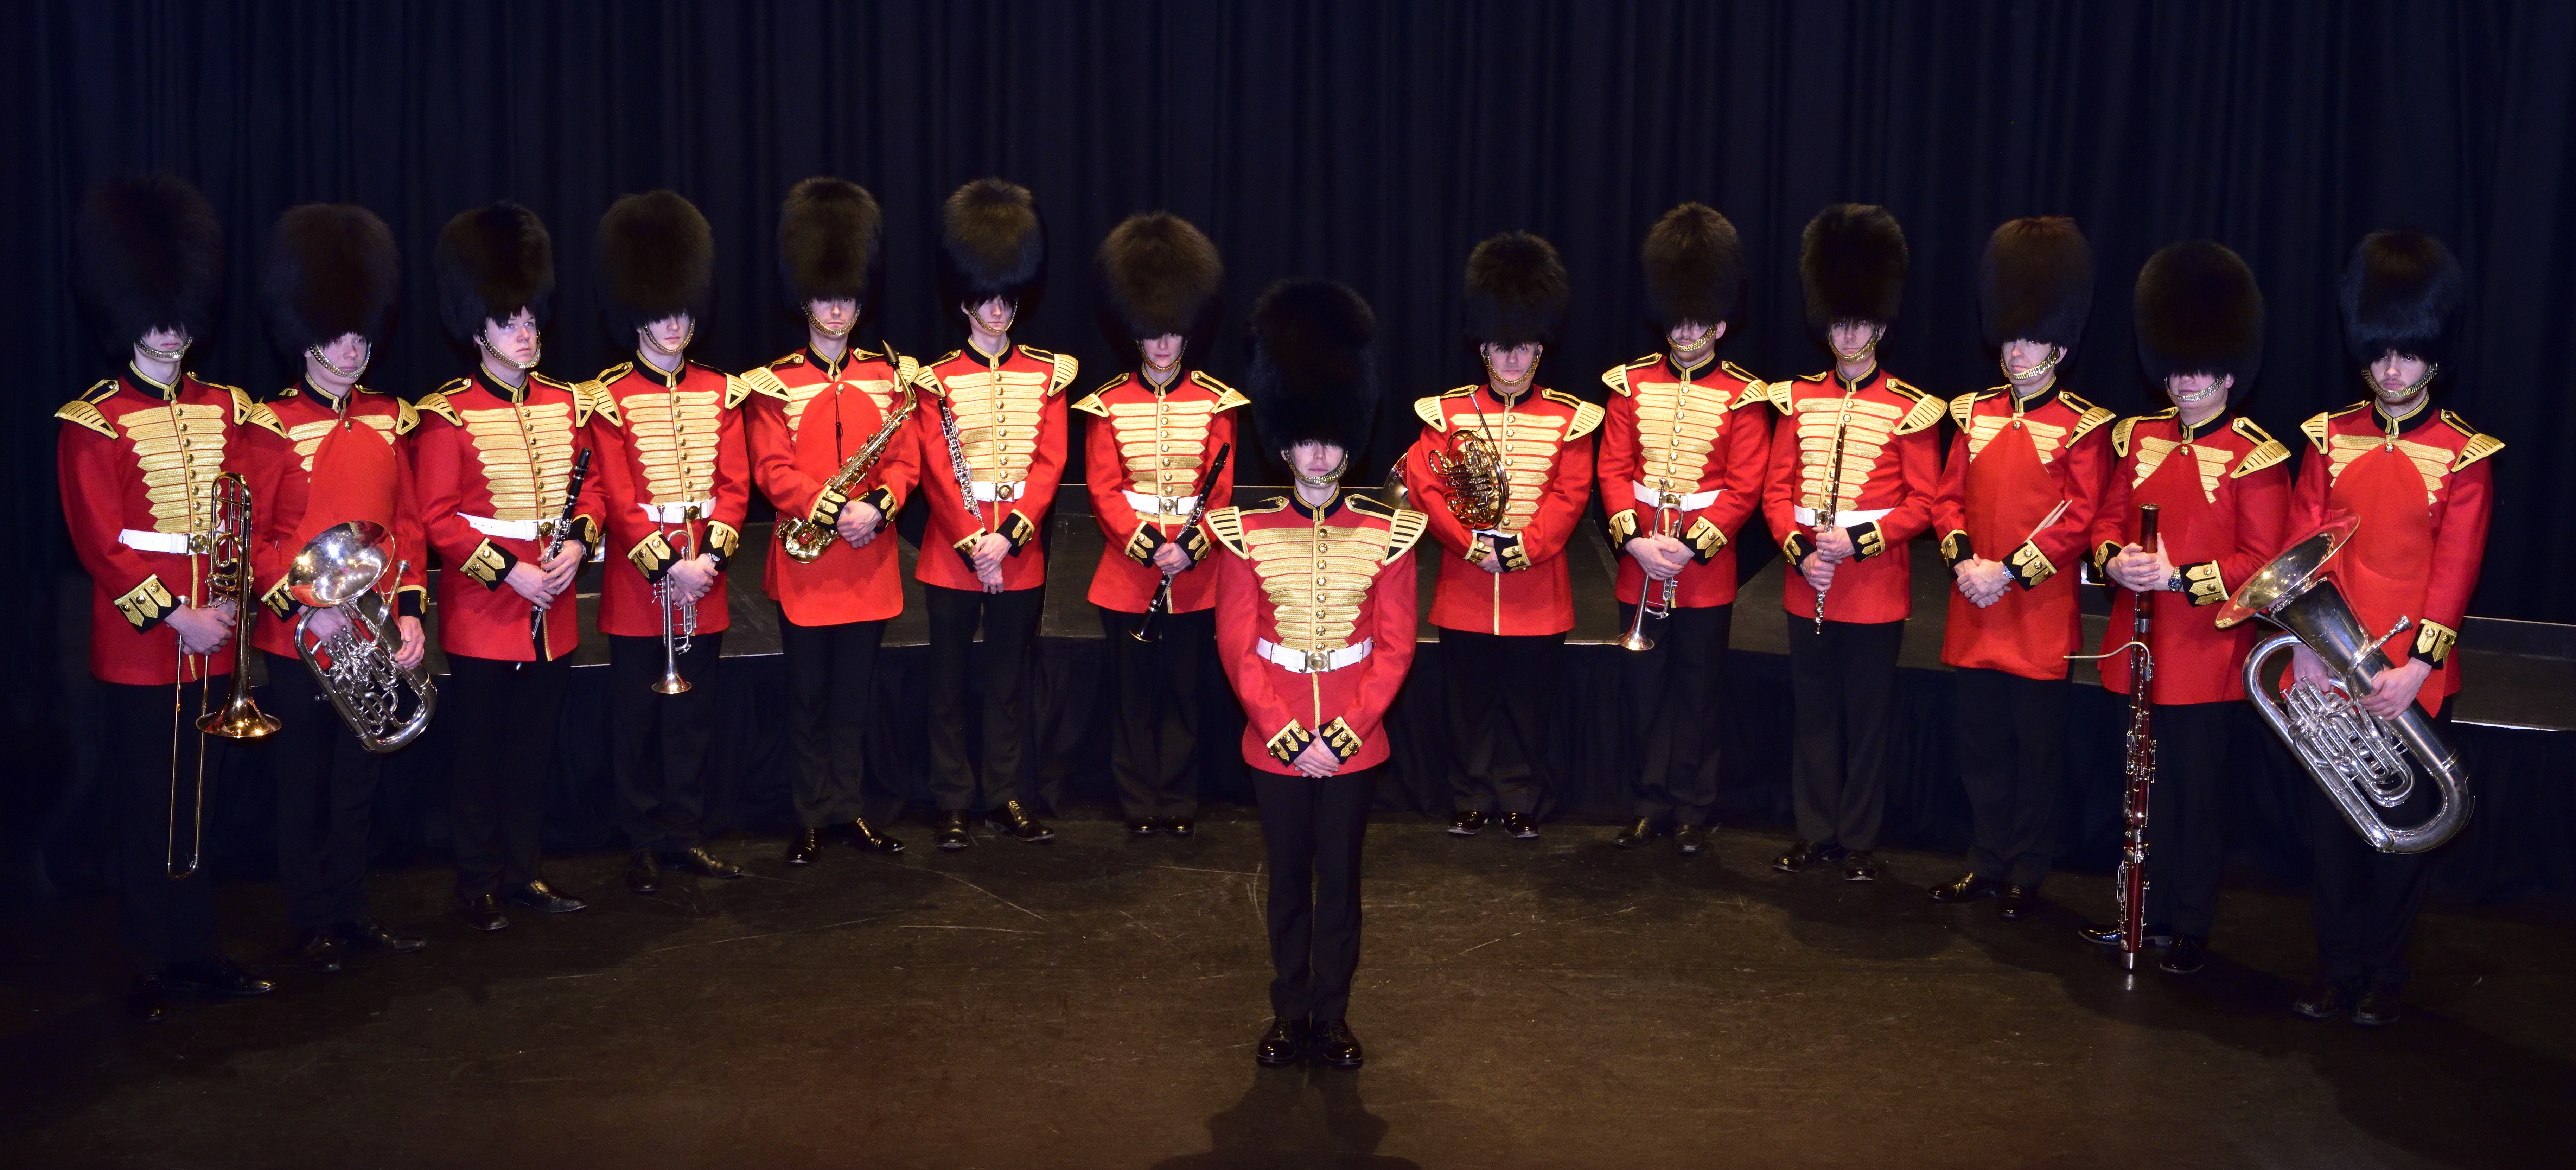 The London Military Band